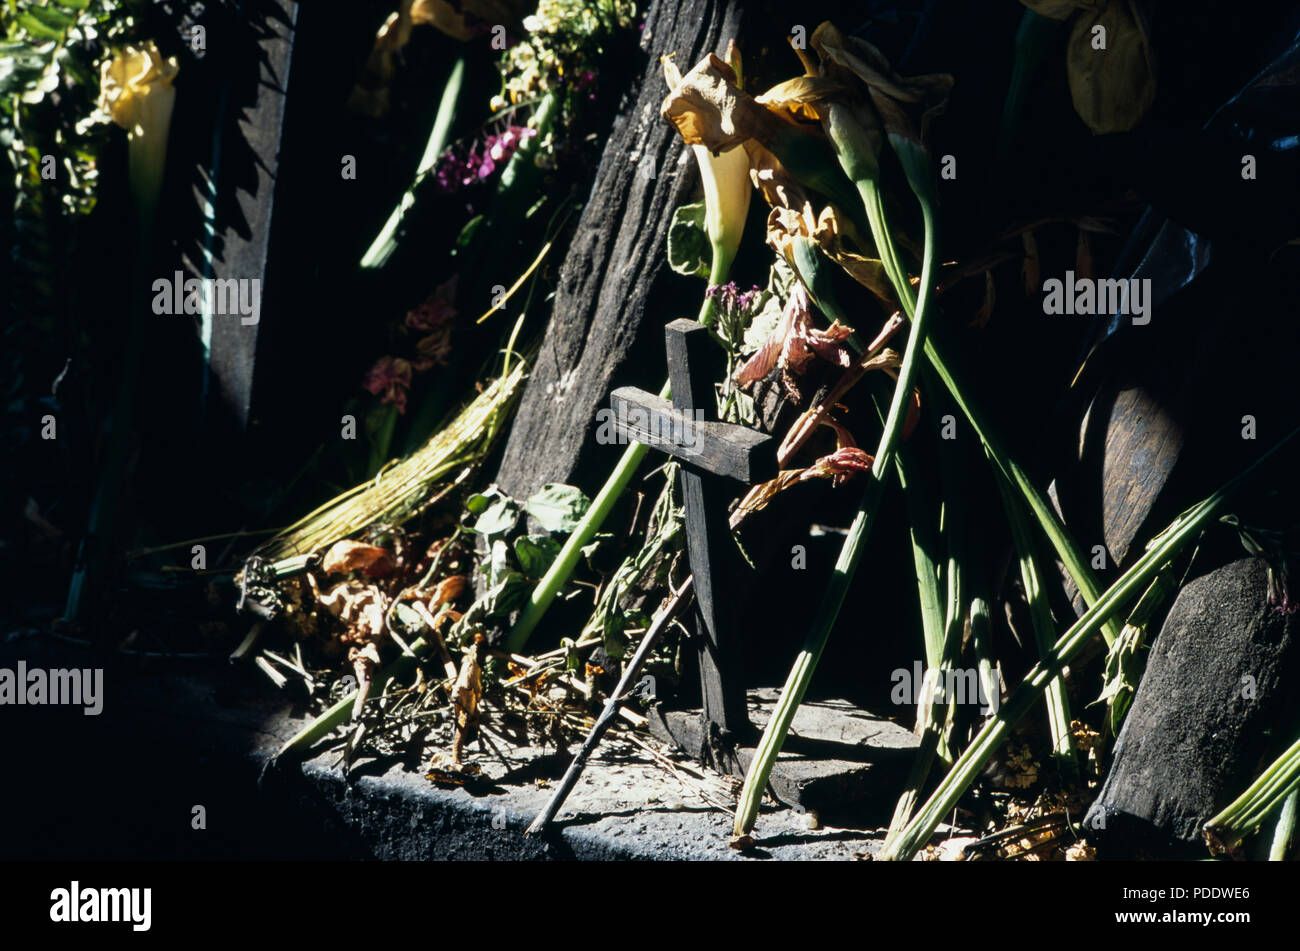 Close-up of Ixil Maya crosses in ceremonial site in Nebaj, Guatemala - Stock Image